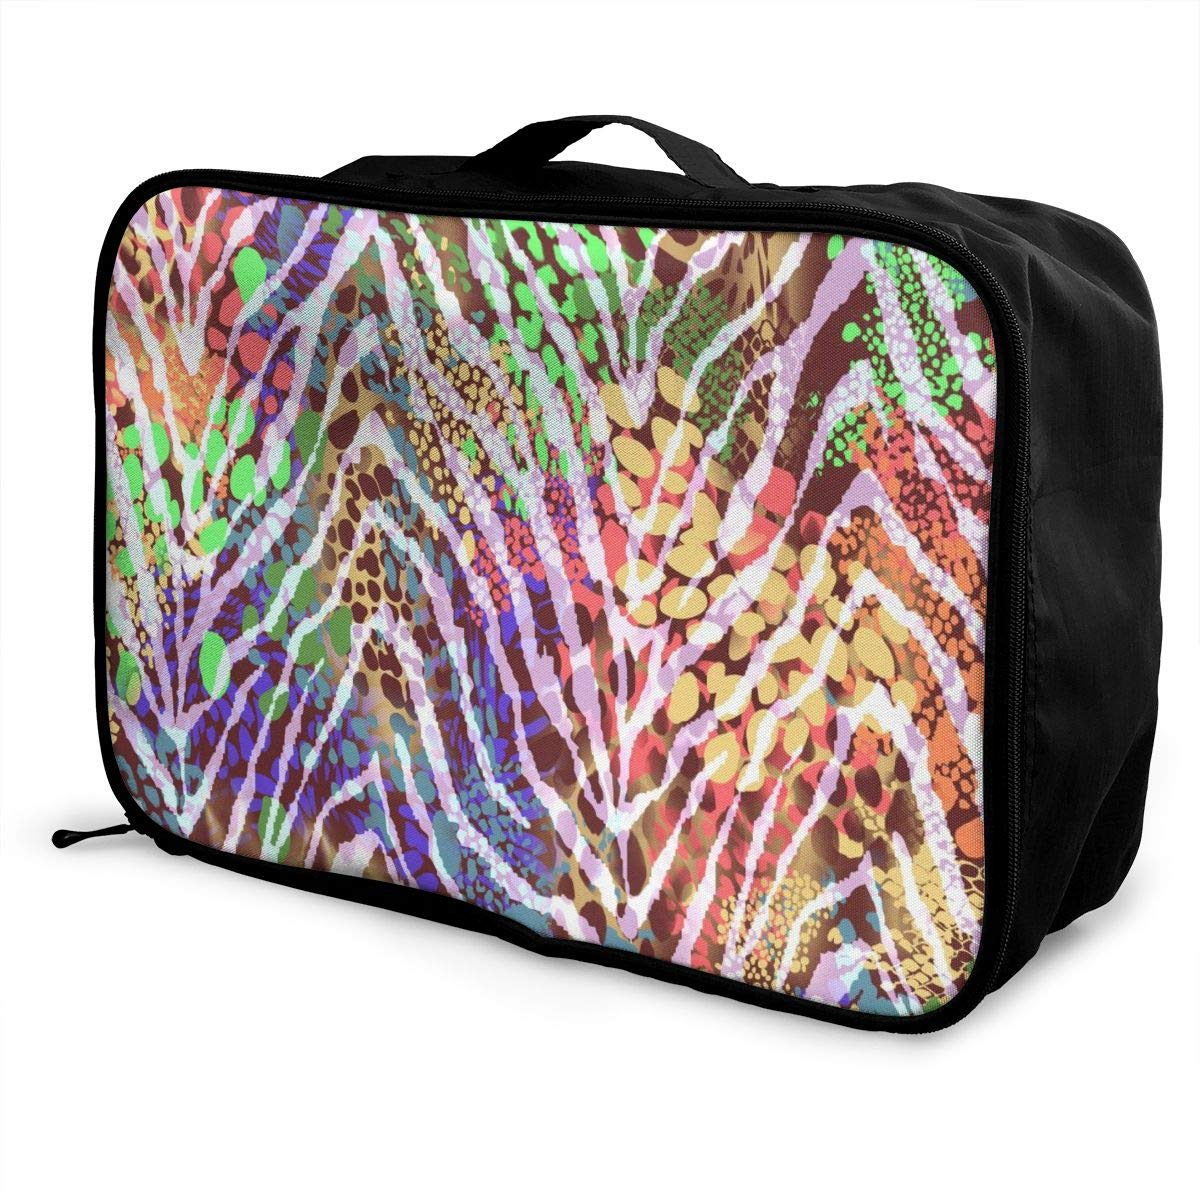 Colorful Leopard Zebra Grain Travel Lightweight Waterproof Foldable Storage Carry Luggage Duffle Tote Bag Large Capacity In Trolley Handle Bags 6x11x15 Inch